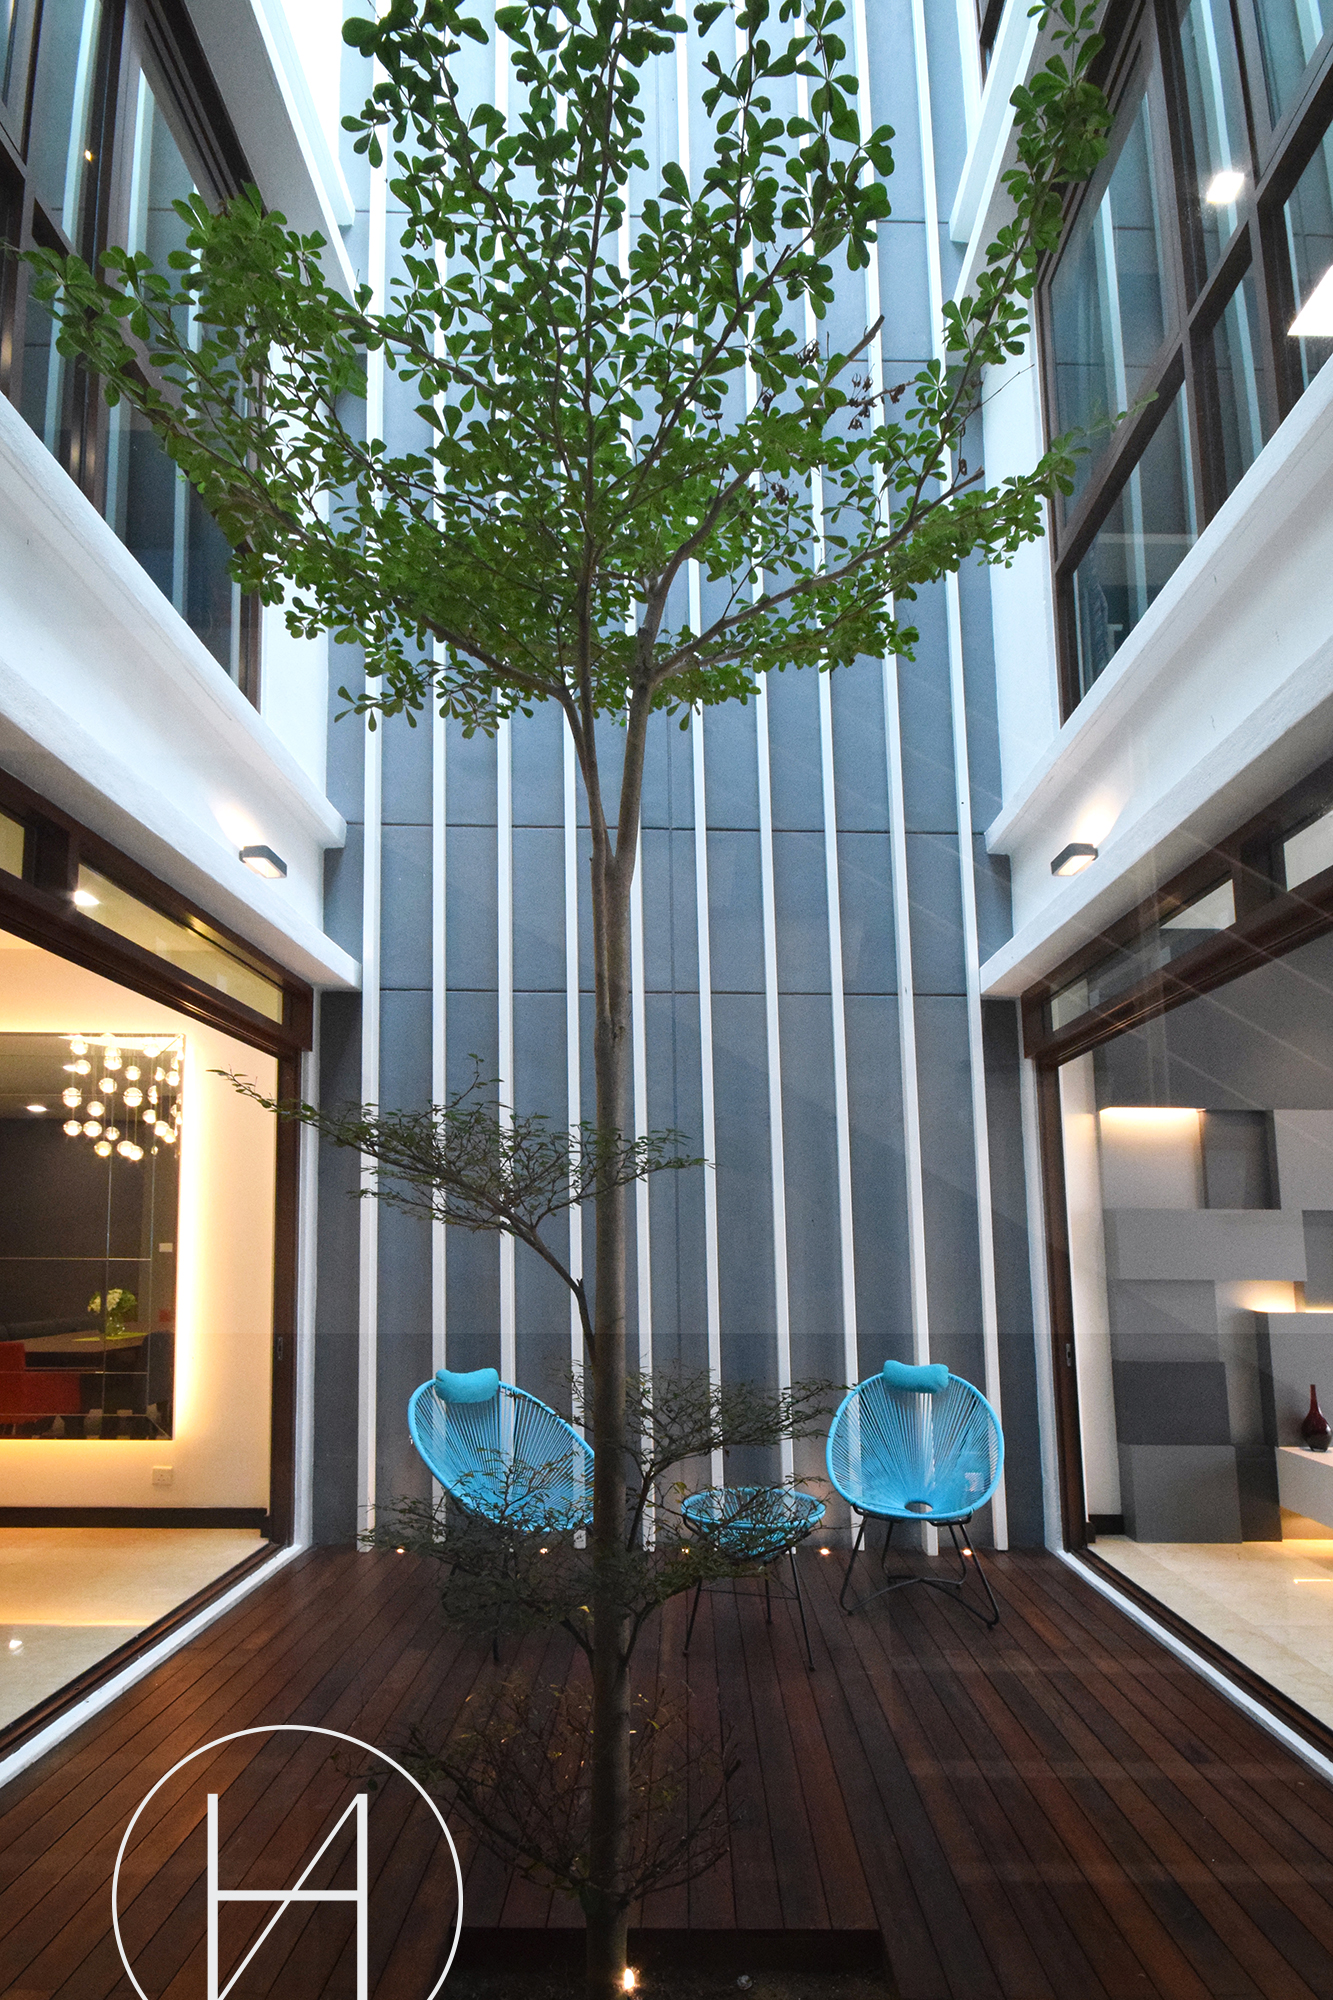 Resident - Kiara View, Mont Kiara by Hatch Interior Studio Sdn Bhd - Kuala Lumpur Semi-D / Bungalow Kitchen Living Living Room Dining Garden Bedroom Bathroom Above 2400 sqft Modern Contemporary - Recommend.my